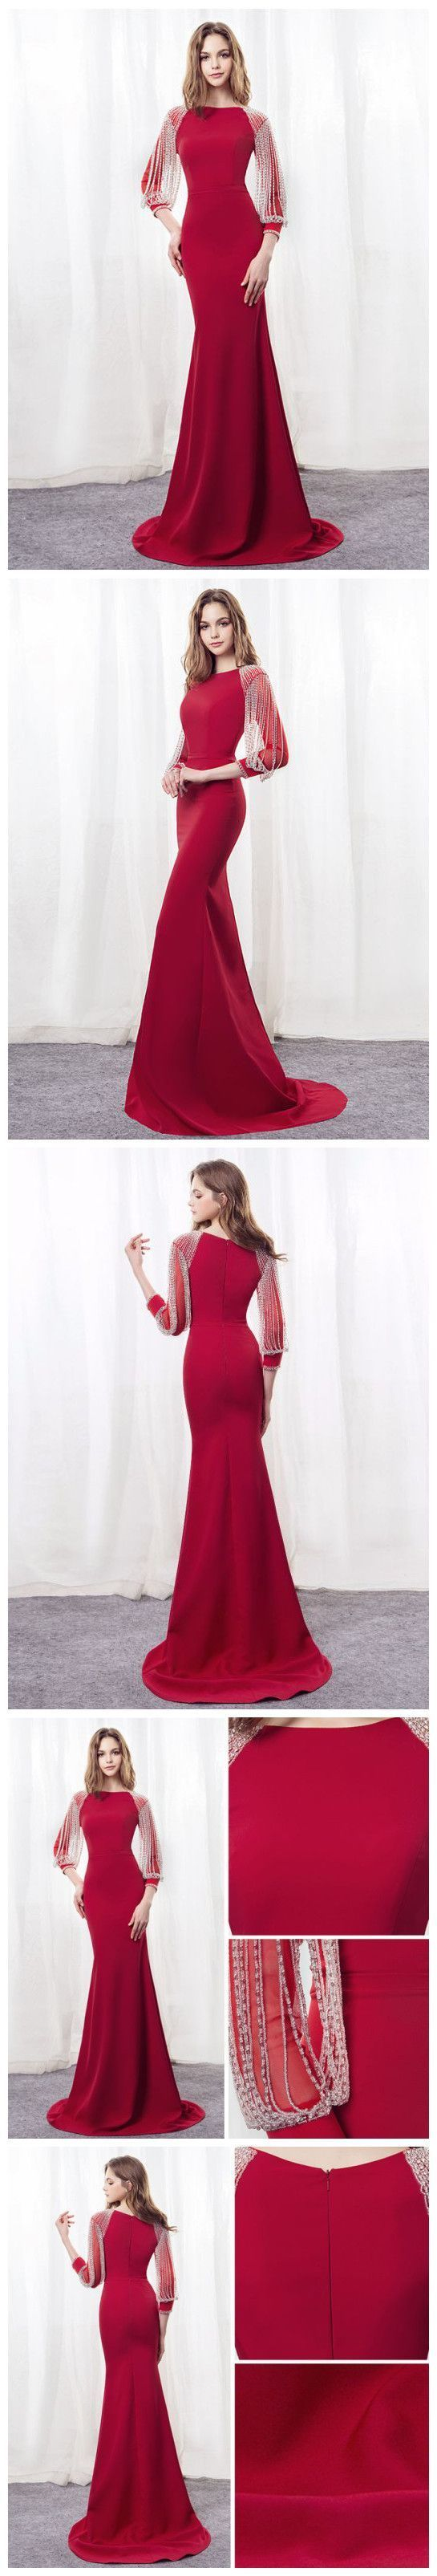 Simple Prom Dresses,Red Prom Gown,Vintage Prom Gowns,Elegant Evening Dress,Cheap